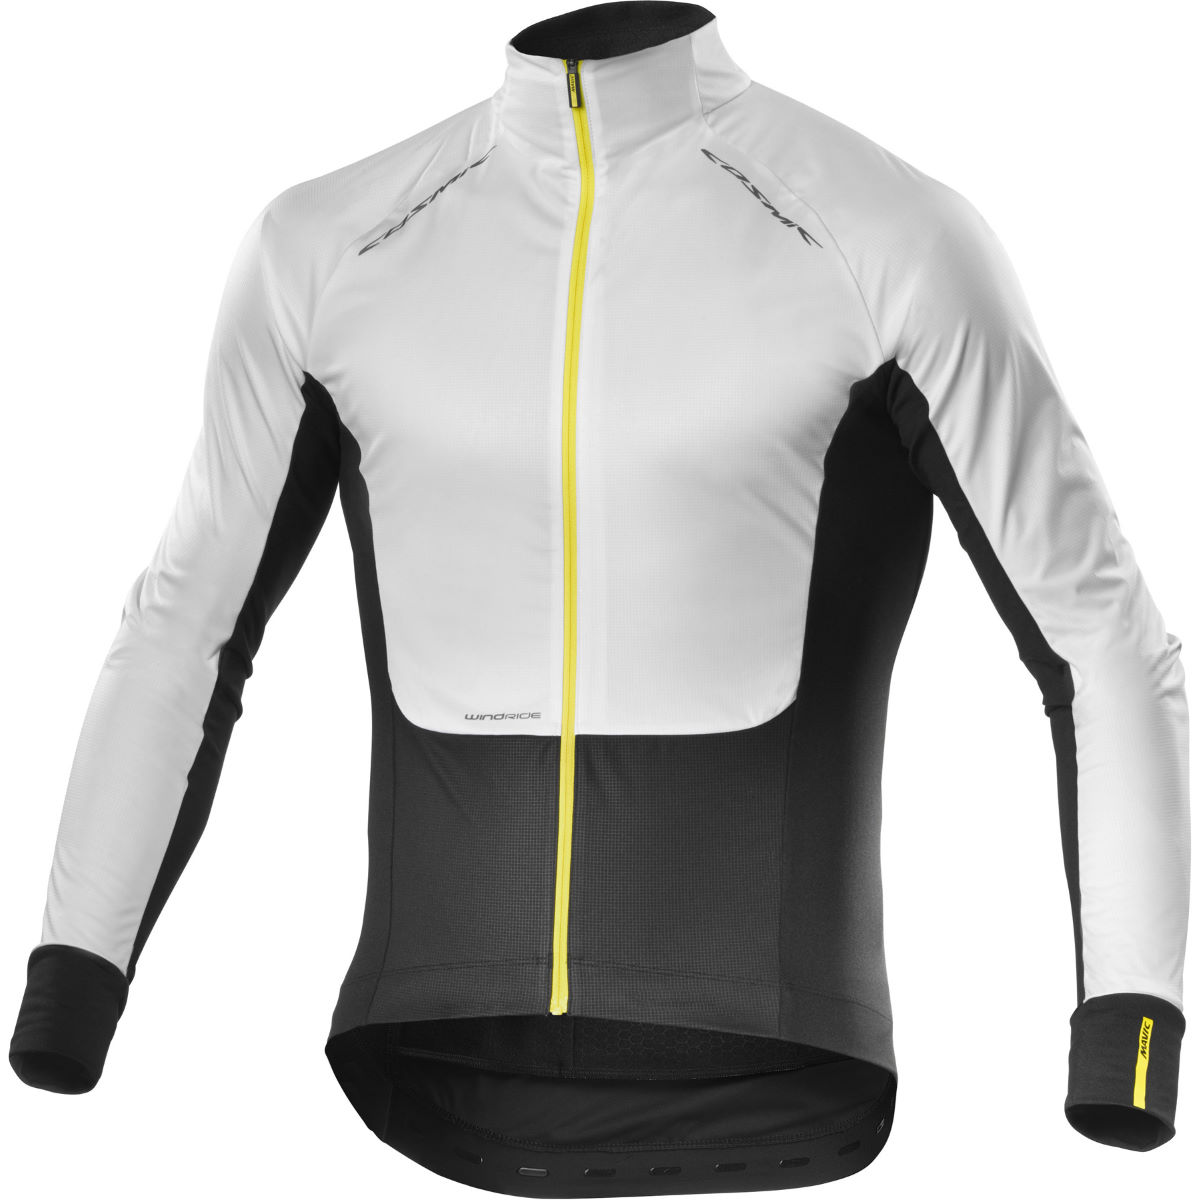 Maillot Mavic Cosmic Pro Wind (manches longues) - XS Blanc/Noir